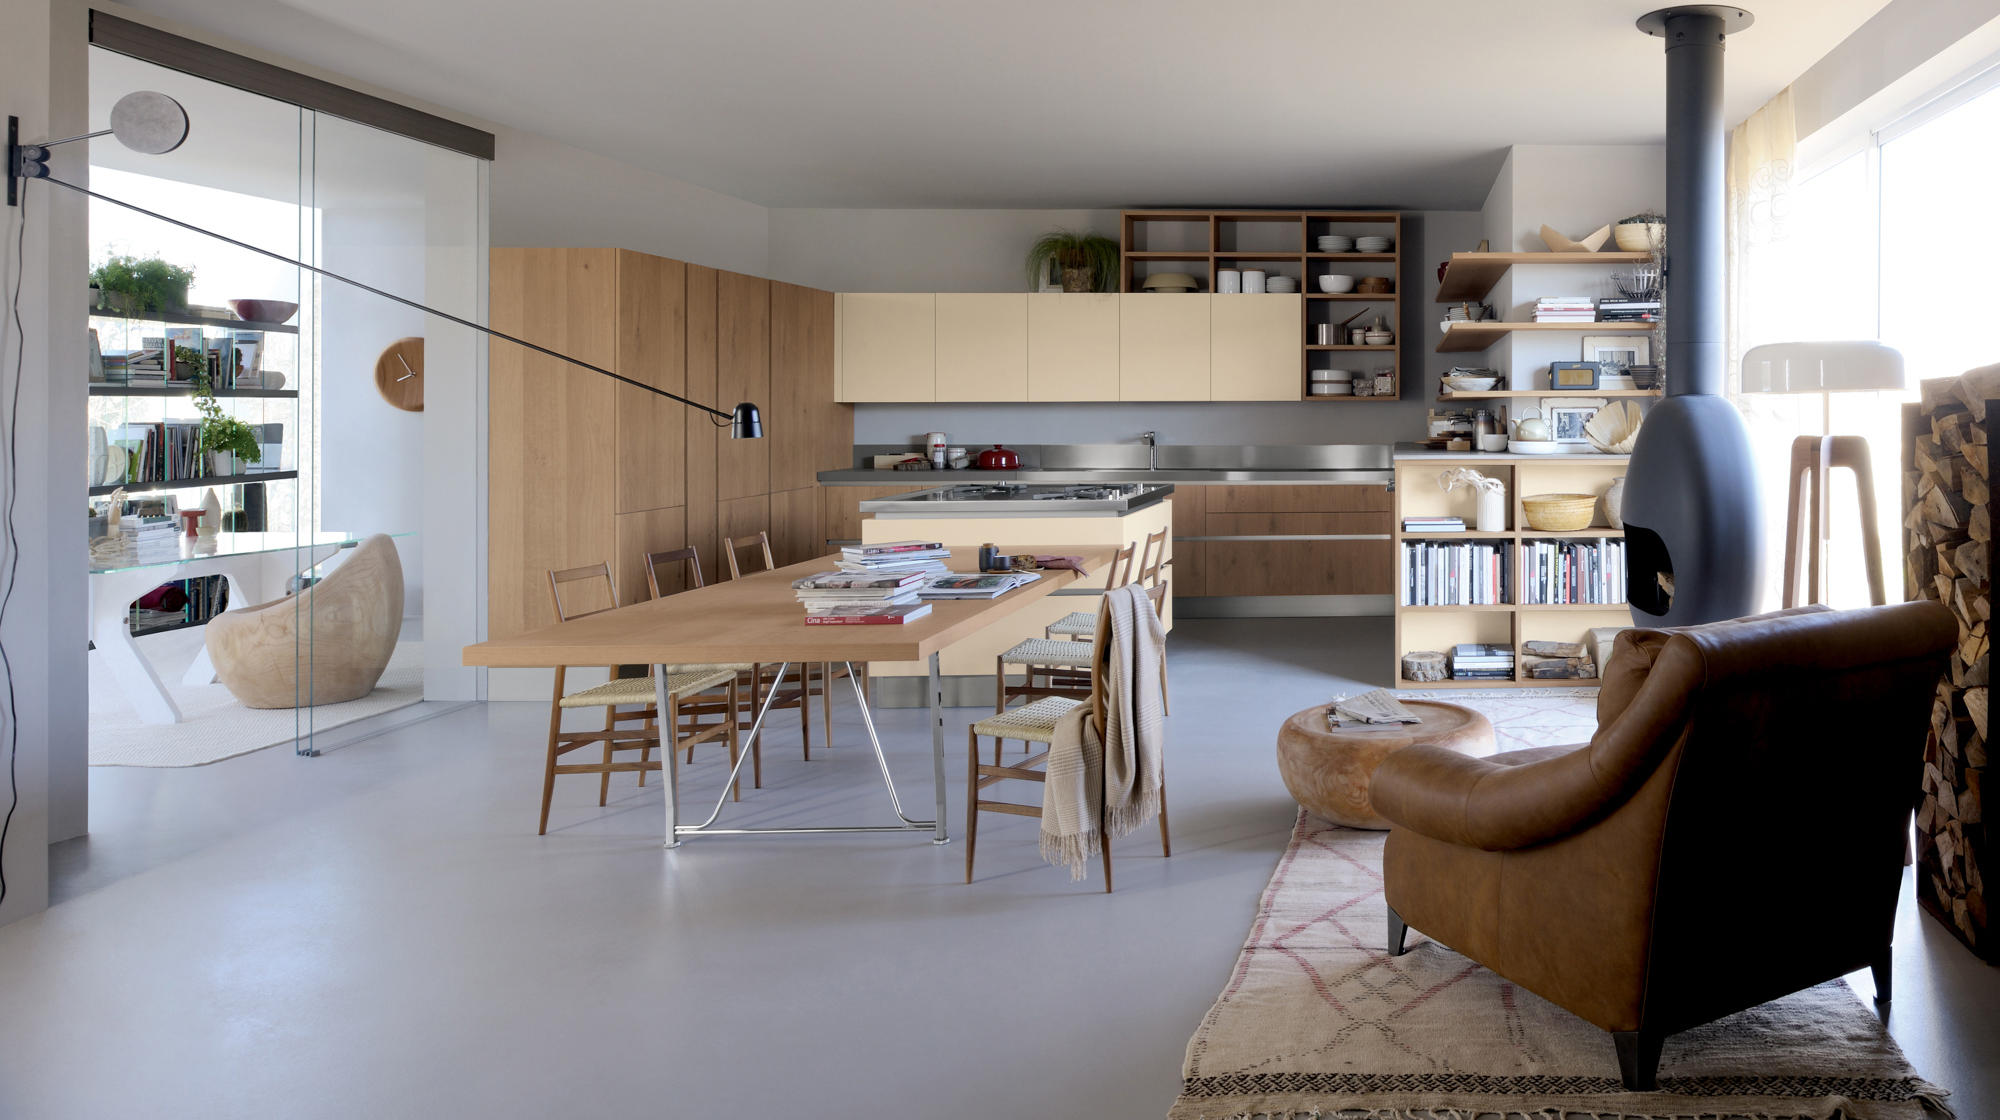 Oyster island kitchens from veneta cucine architonic for Cucina planner